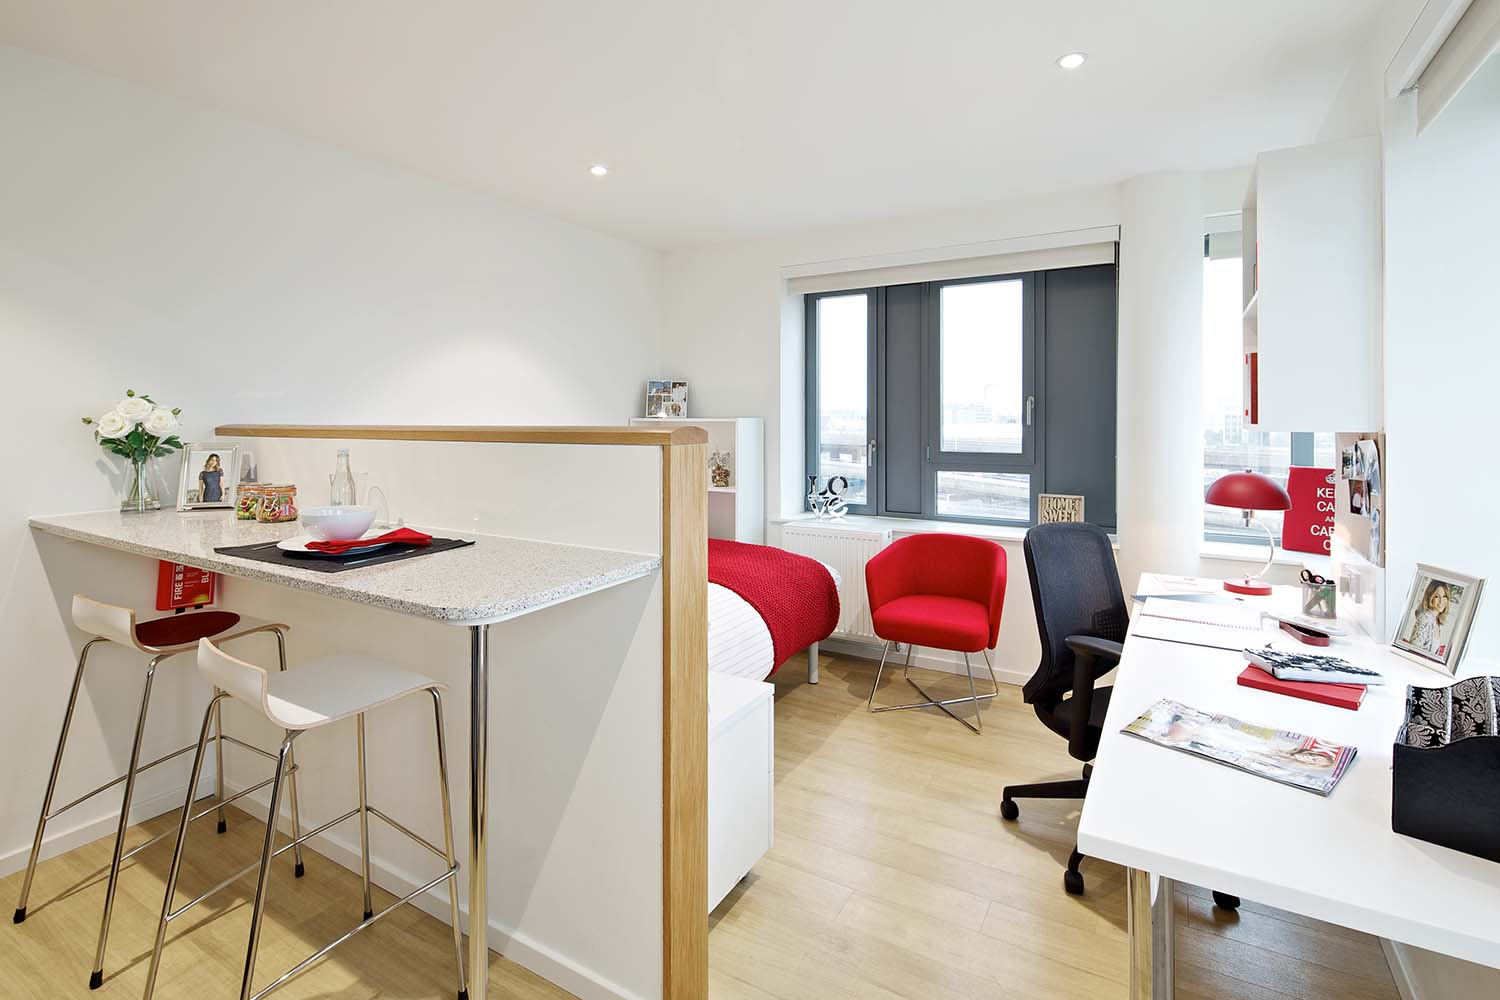 Premium studio with breakfast bar at GradPad Wood Lane Studios in White City